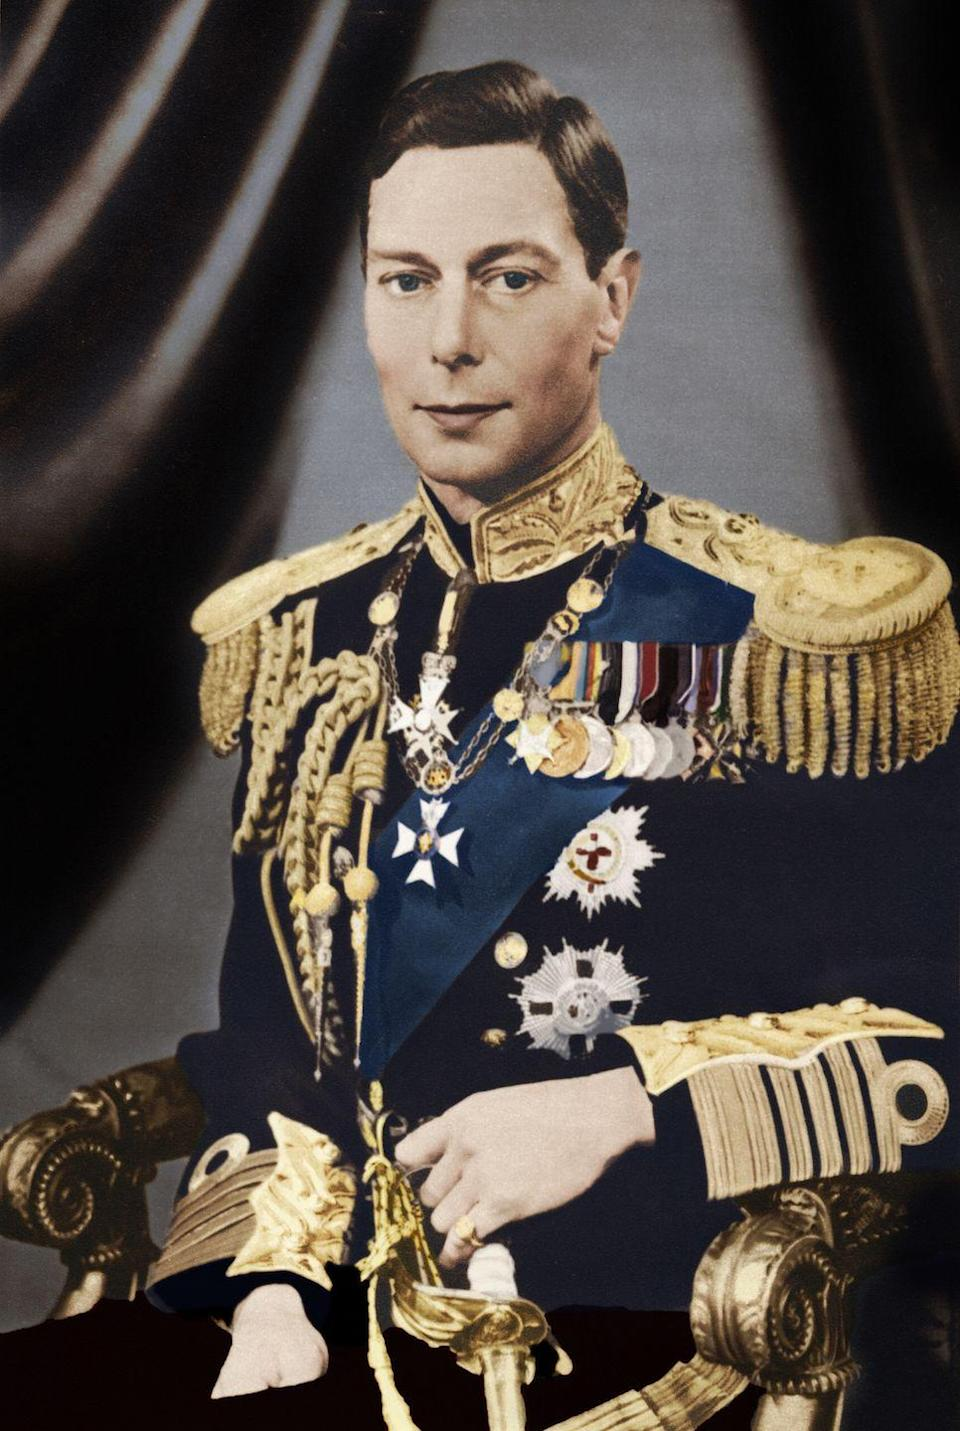 "<p>It's the end of an era when King George VI <a href=""https://www.biography.com/people/george-vi-9308937"" rel=""nofollow noopener"" target=""_blank"" data-ylk=""slk:dies on February 6"" class=""link rapid-noclick-resp"">dies on February 6</a>. His daughter, Elizabeth, ascends the throne. </p><p><em>RELATED: <a href=""https://www.goodhousekeeping.com/life/entertainment/a33742/12-facts-about-buckingham-palace/"" rel=""nofollow noopener"" target=""_blank"" data-ylk=""slk:12 facts about Buckingham Palace"" class=""link rapid-noclick-resp"">12 facts about Buckingham Palace </a></em></p>"